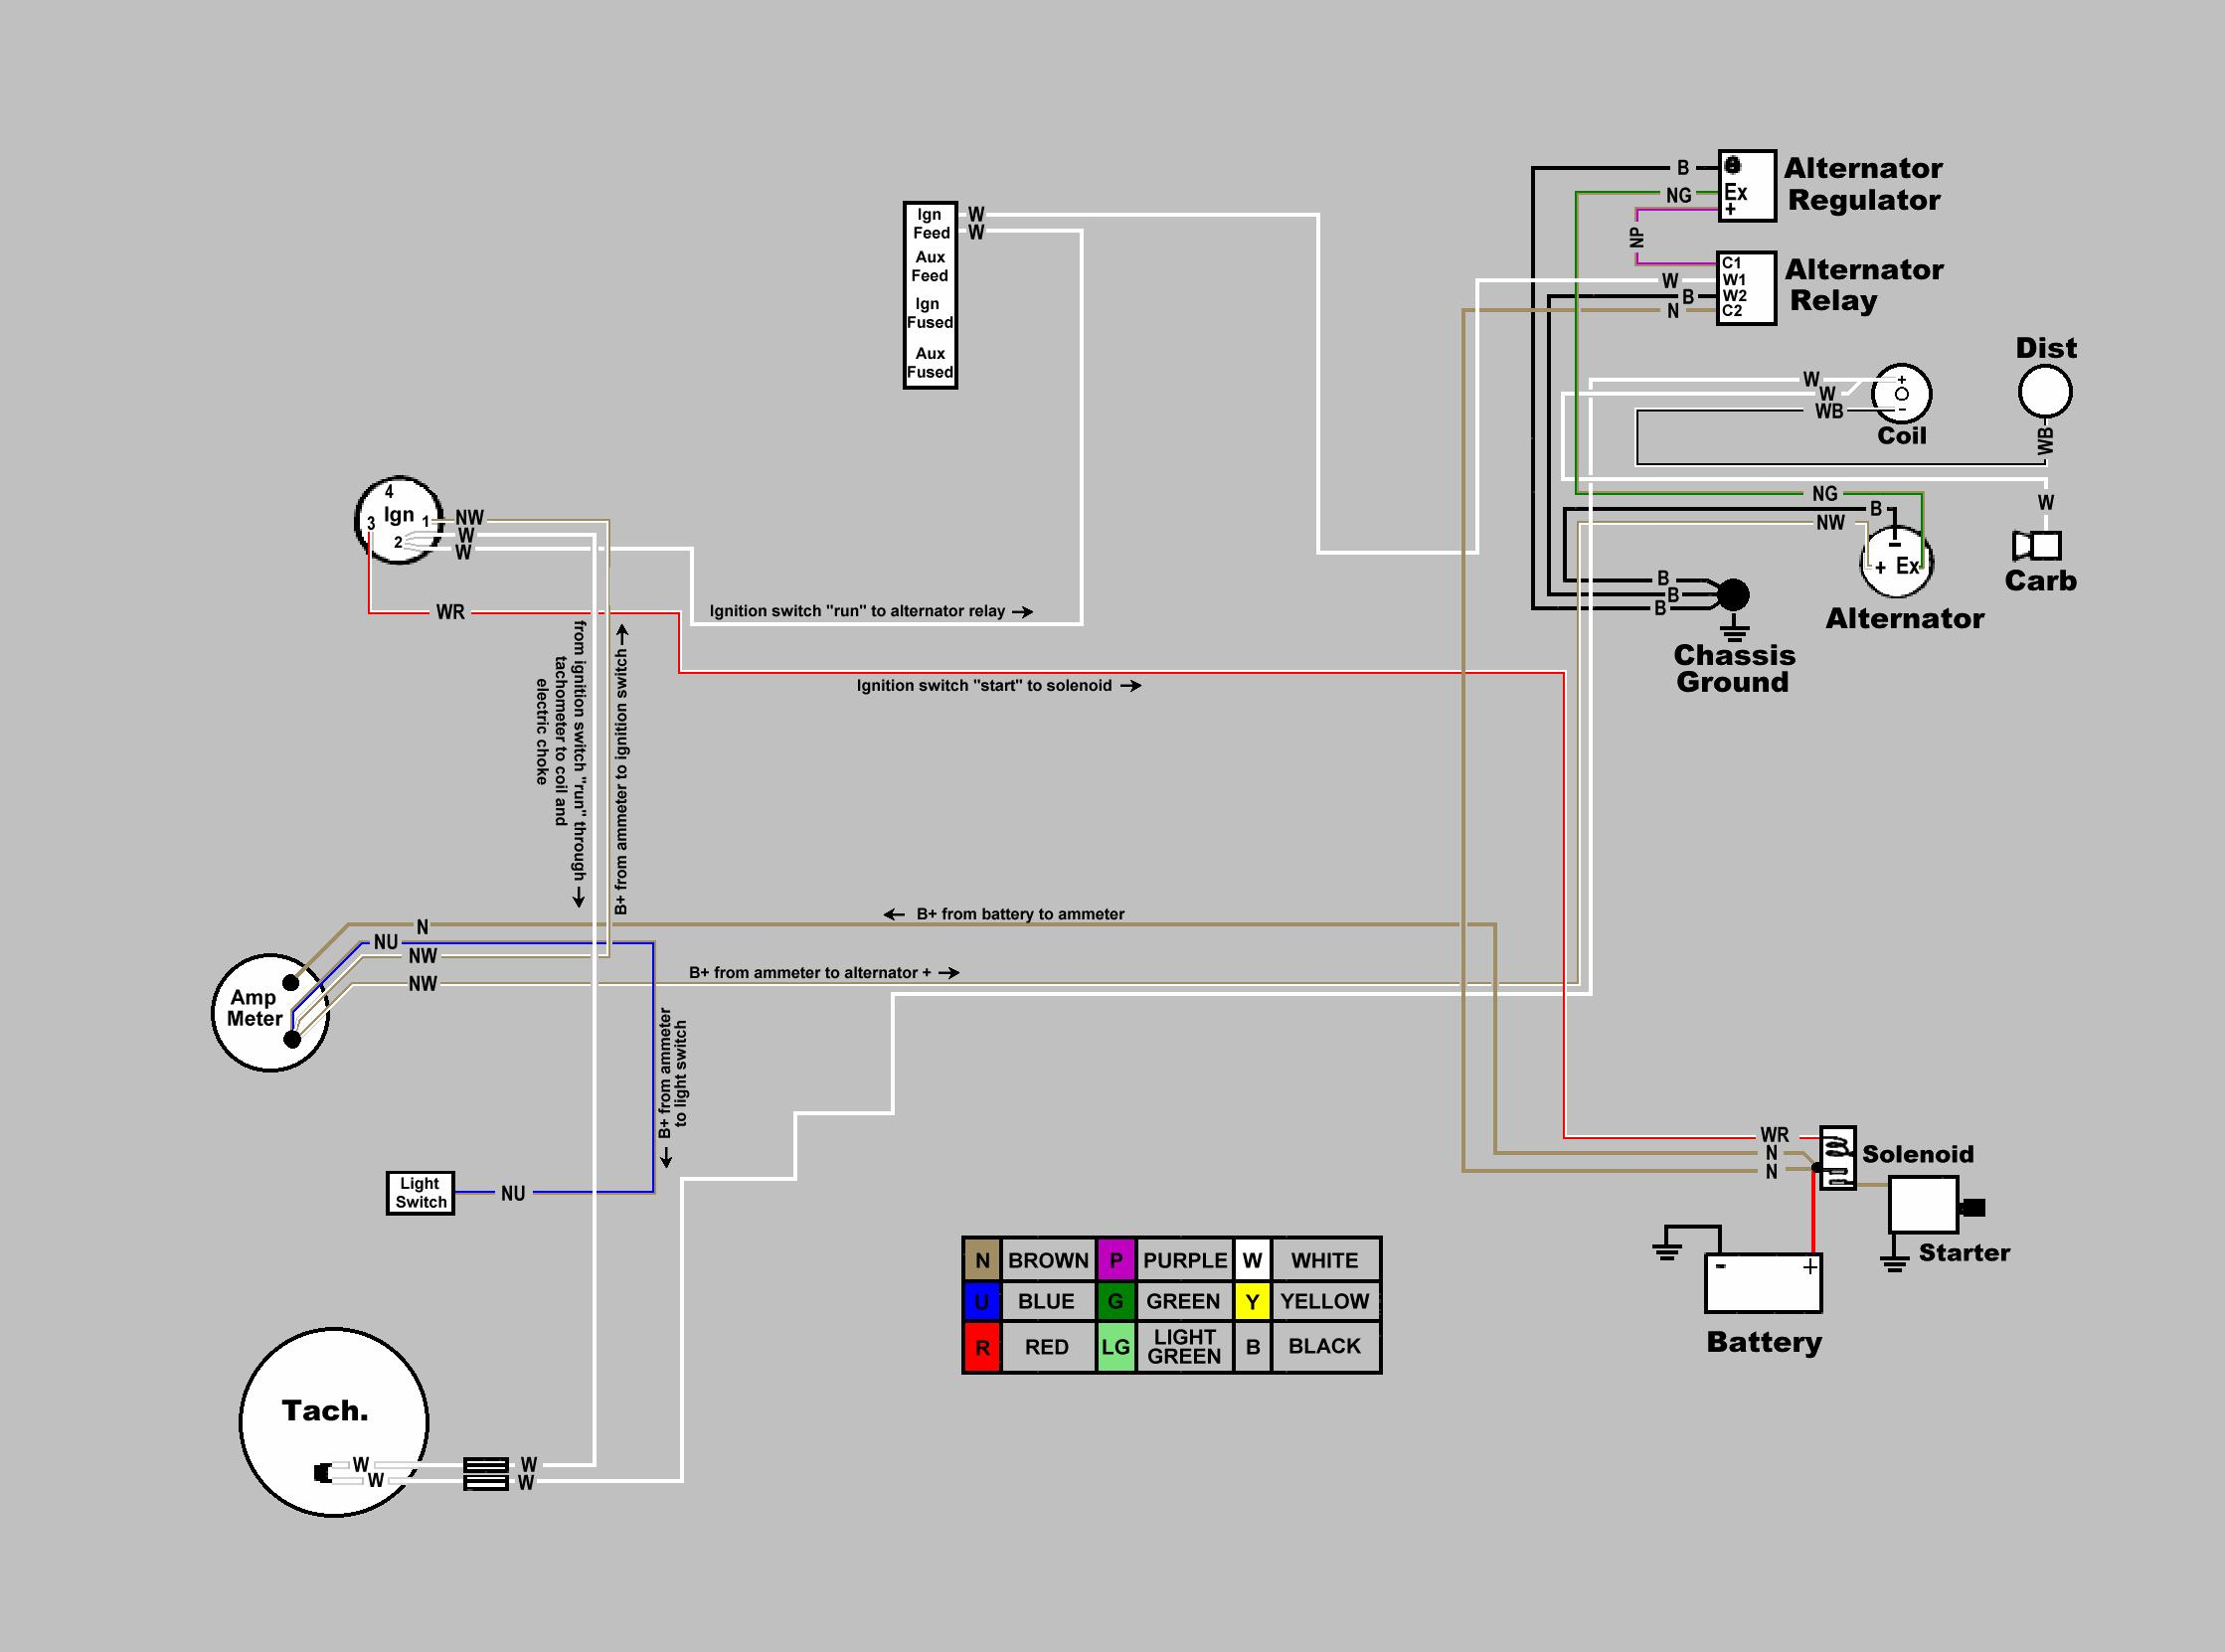 Plane Power Wiring Diagram likewise 34357 together with 2005 Nissan Sentra O2 Sensor furthermore Diagram Of Samsung Galaxy 3 also Pulmonary valve. on s2 system wiring diagram